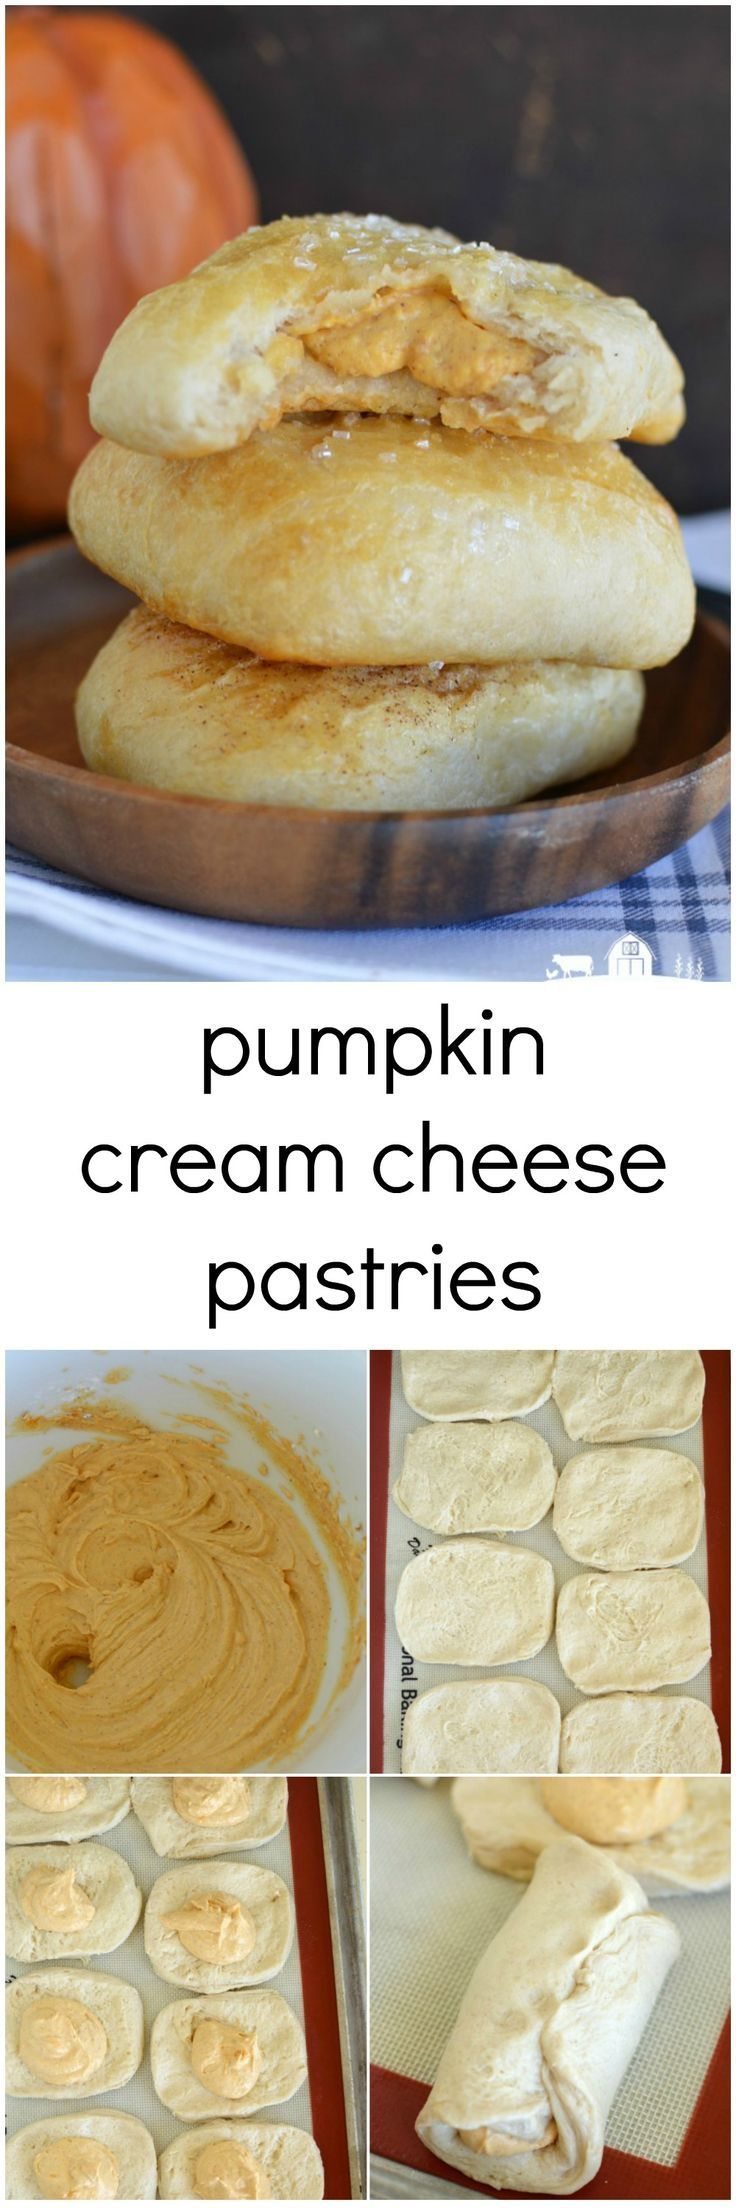 Pumpkin Cream Cheese Pastries– A buttery, flaky pastry filled with a surprise of decadent pumpkincream cheese filling on the inside.: